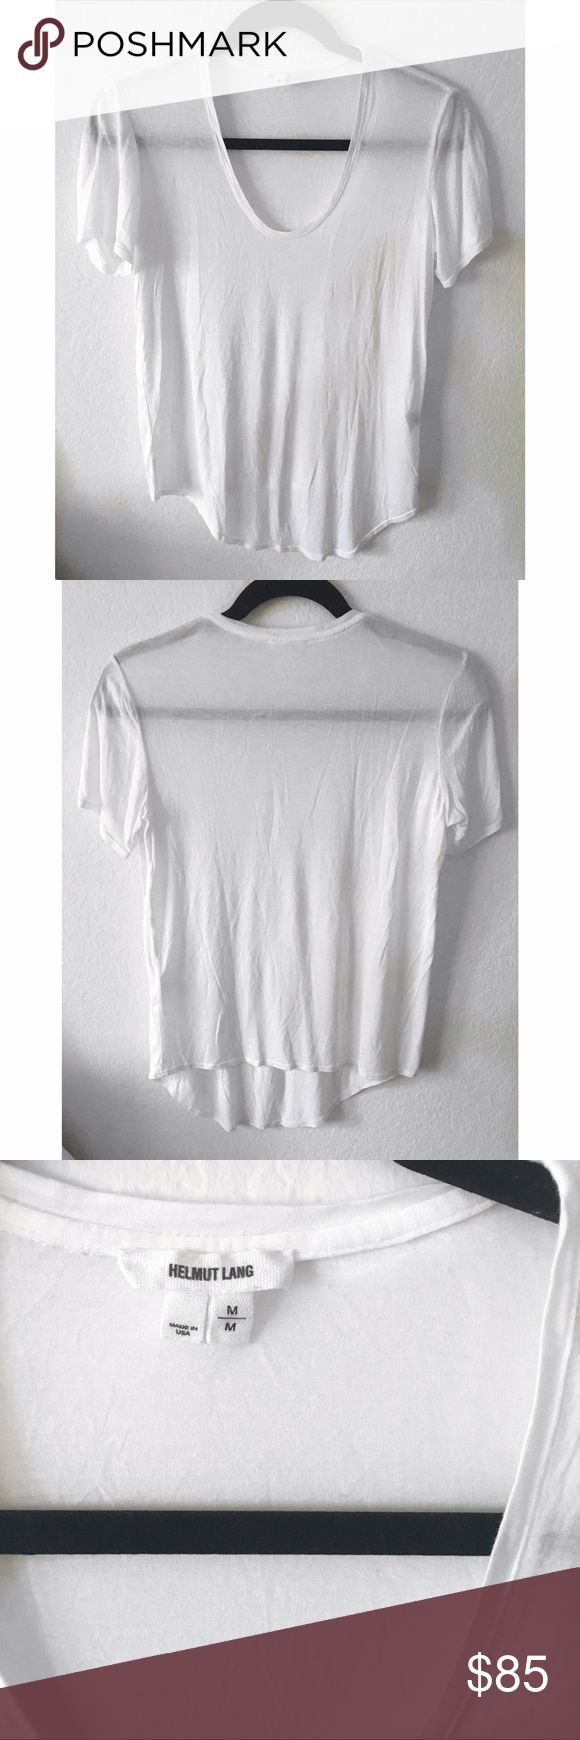 Helmut Lang White Tee This Helmut Lang shirt is a wardrobe staple. It is in perfect condition - only worn once or twice. As the photos show, it is on the sheerer side - perfect for showing off a pretty bra or bralette. I am open to reasonable offers! This top is a size medium, but I would say it fits more like a small. Would also fit size medium if you're looking for a tighter fit! Helmut Lang Tops Tees - Short Sleeve